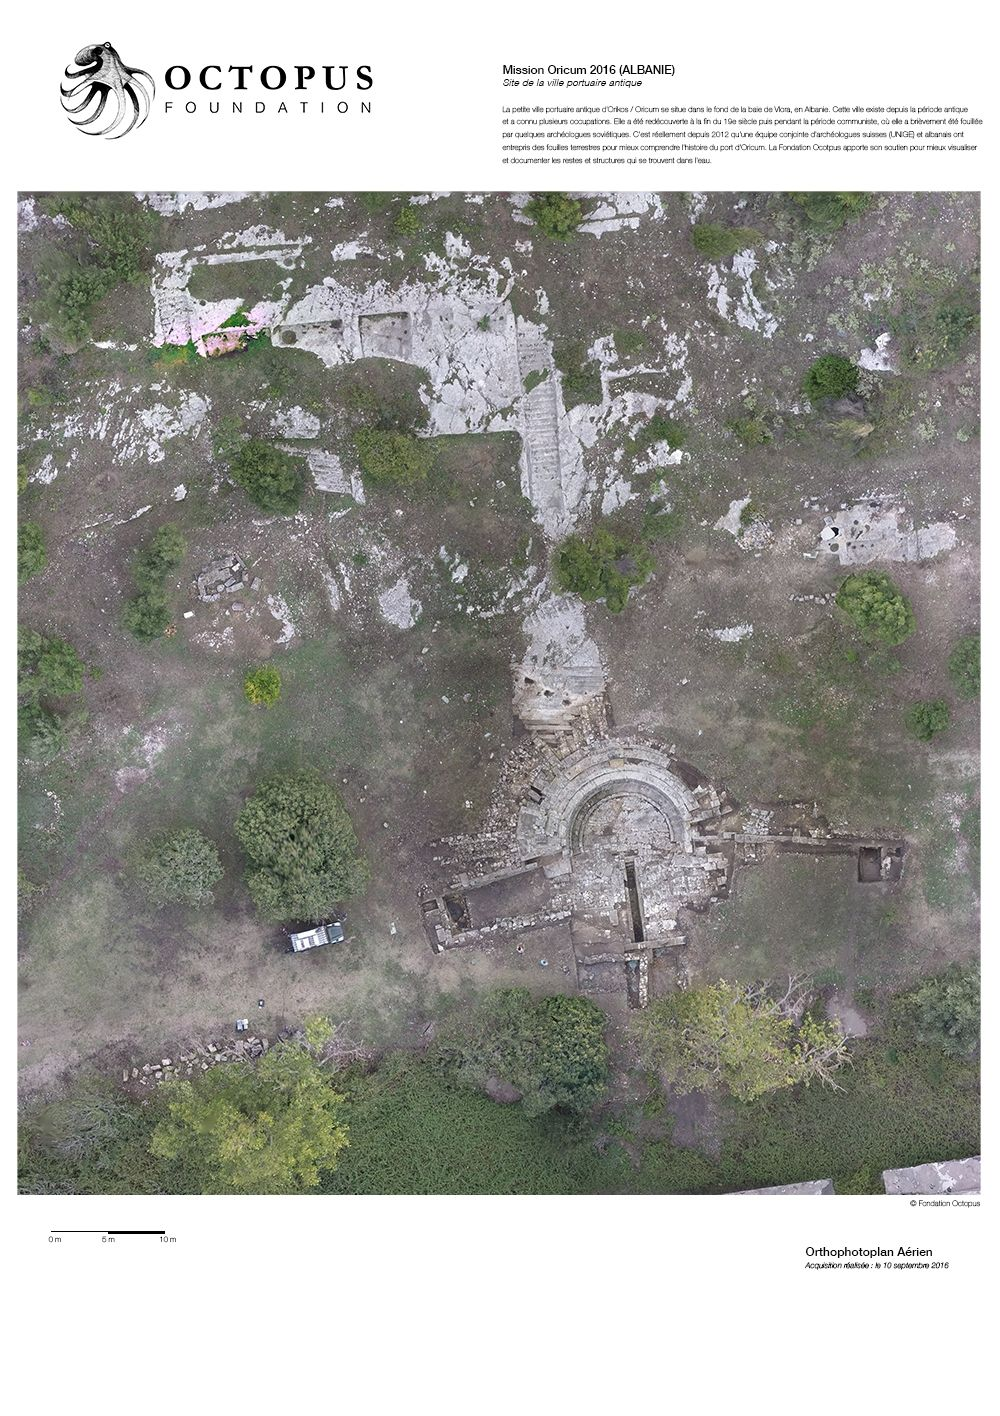 L'orthophotoplan de la cité antique d'Oricum © Octopus Foundation